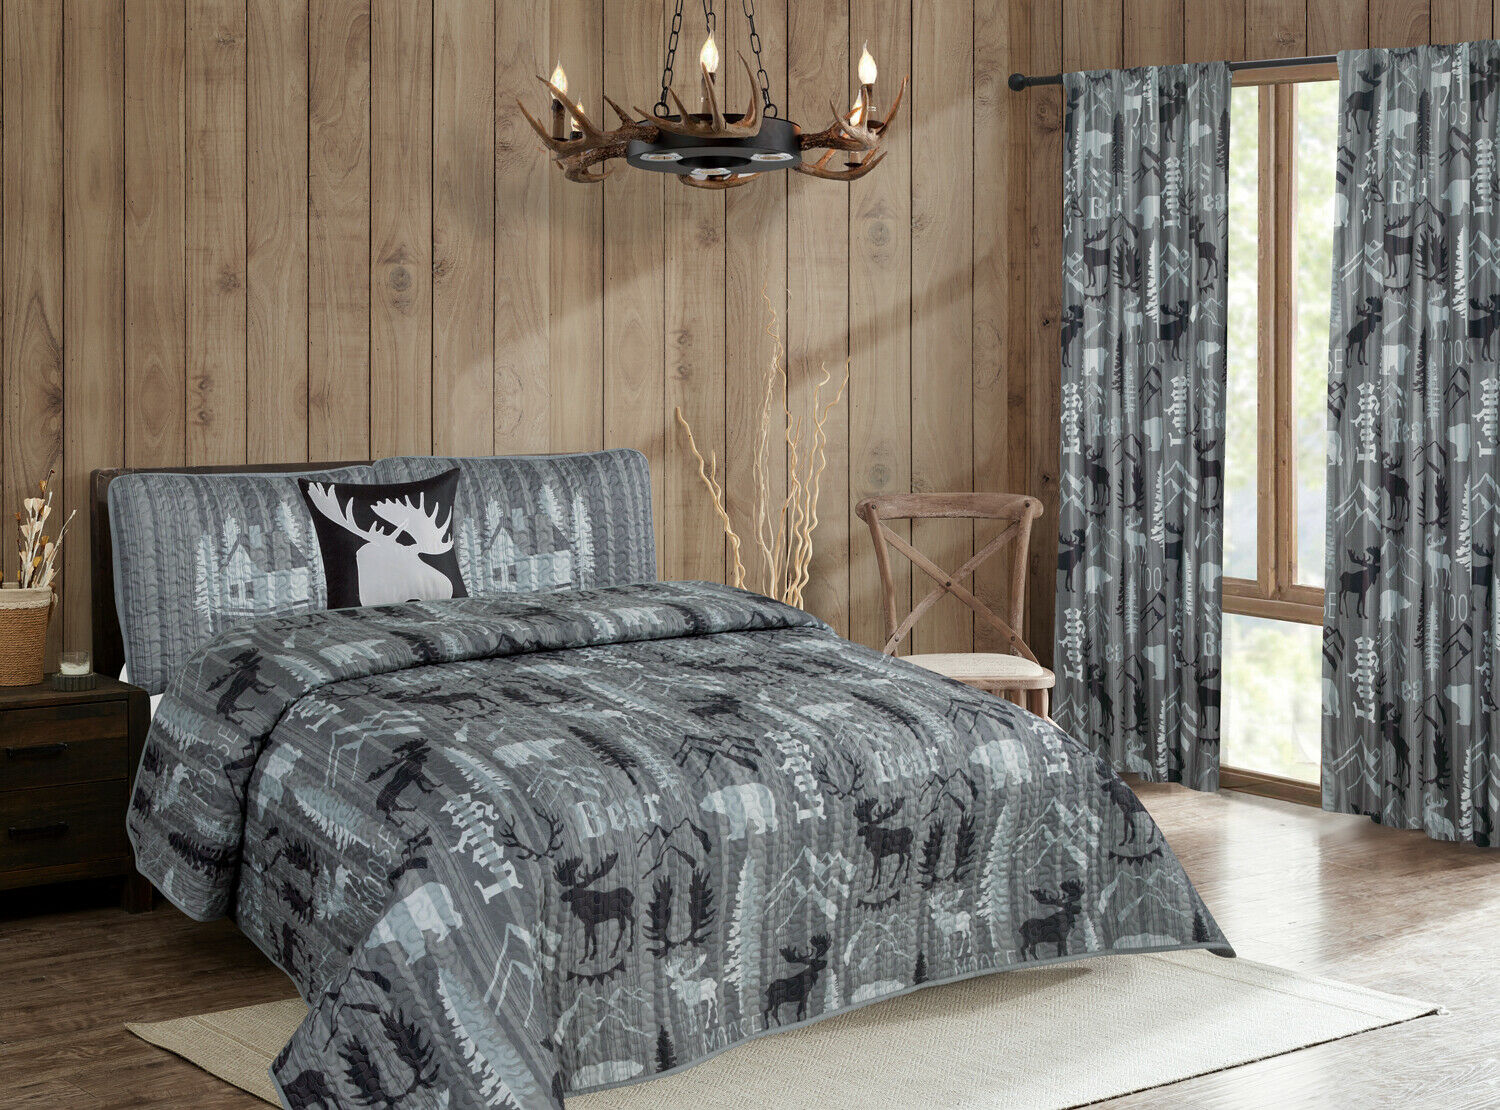 Rustic Mountain Lodge Quilt Bedding Set Cabin Woods Moose Bear, Black and Grey Bedding